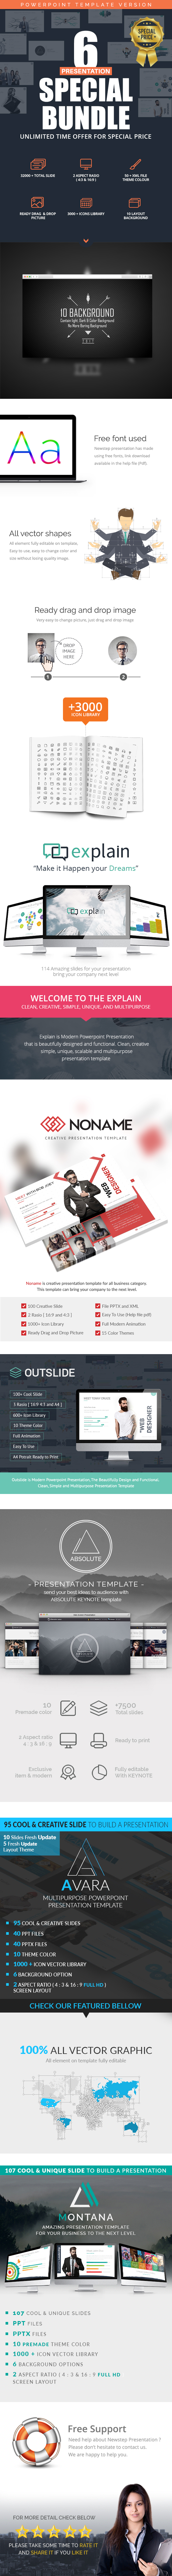 6 in 1 Bundle - Powerpoint Template - Business PowerPoint Templates